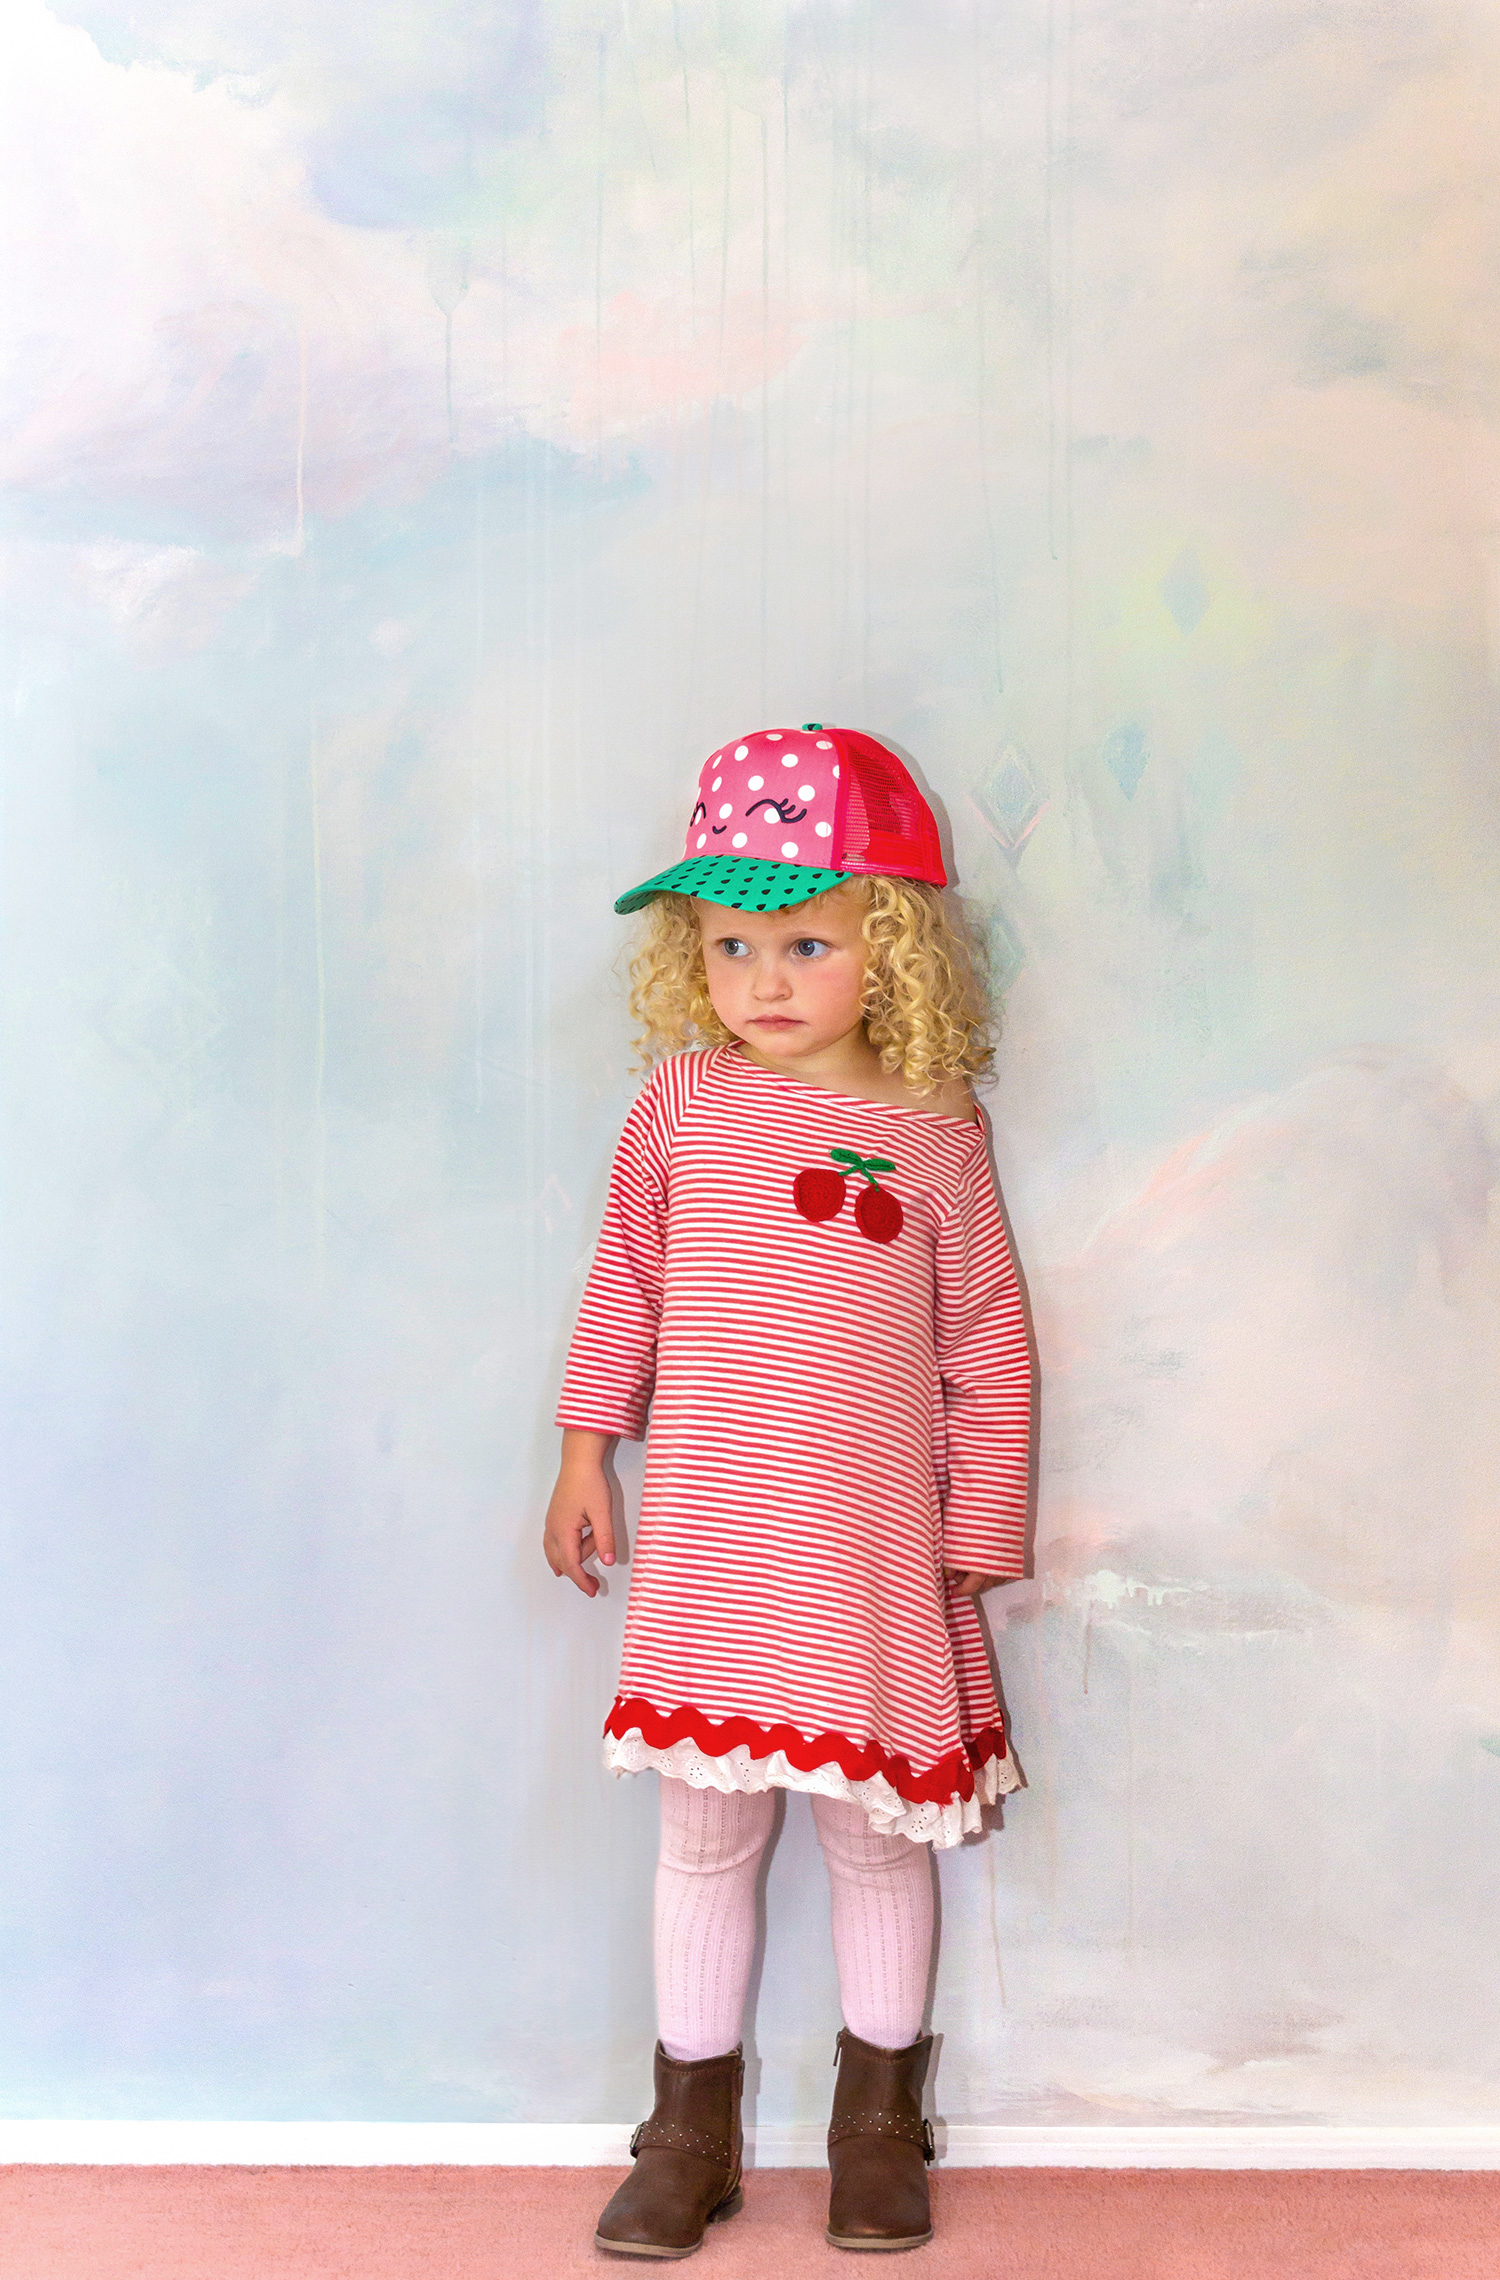 Dreamily styled children's bedroom idea, with painted cloud mural in pastel tones, features blonde curly haired child model wearing stripey cherry red dress.